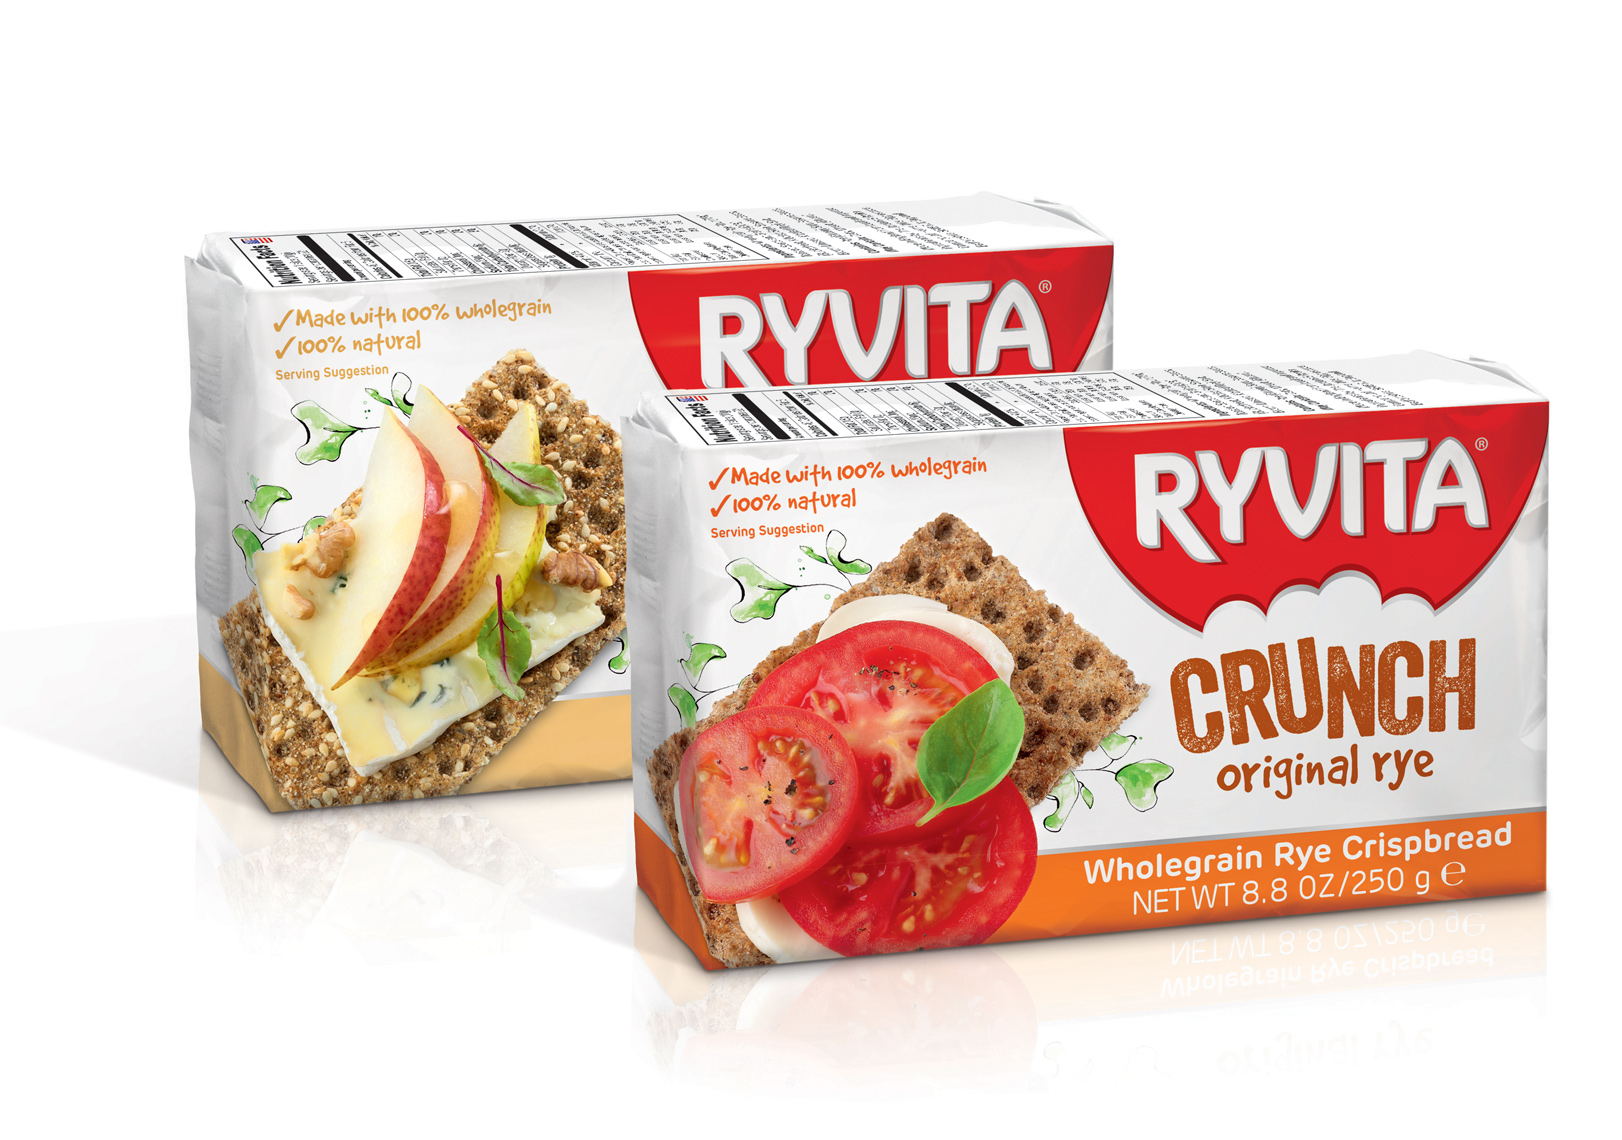 HDinas_Packaging_Ryvita